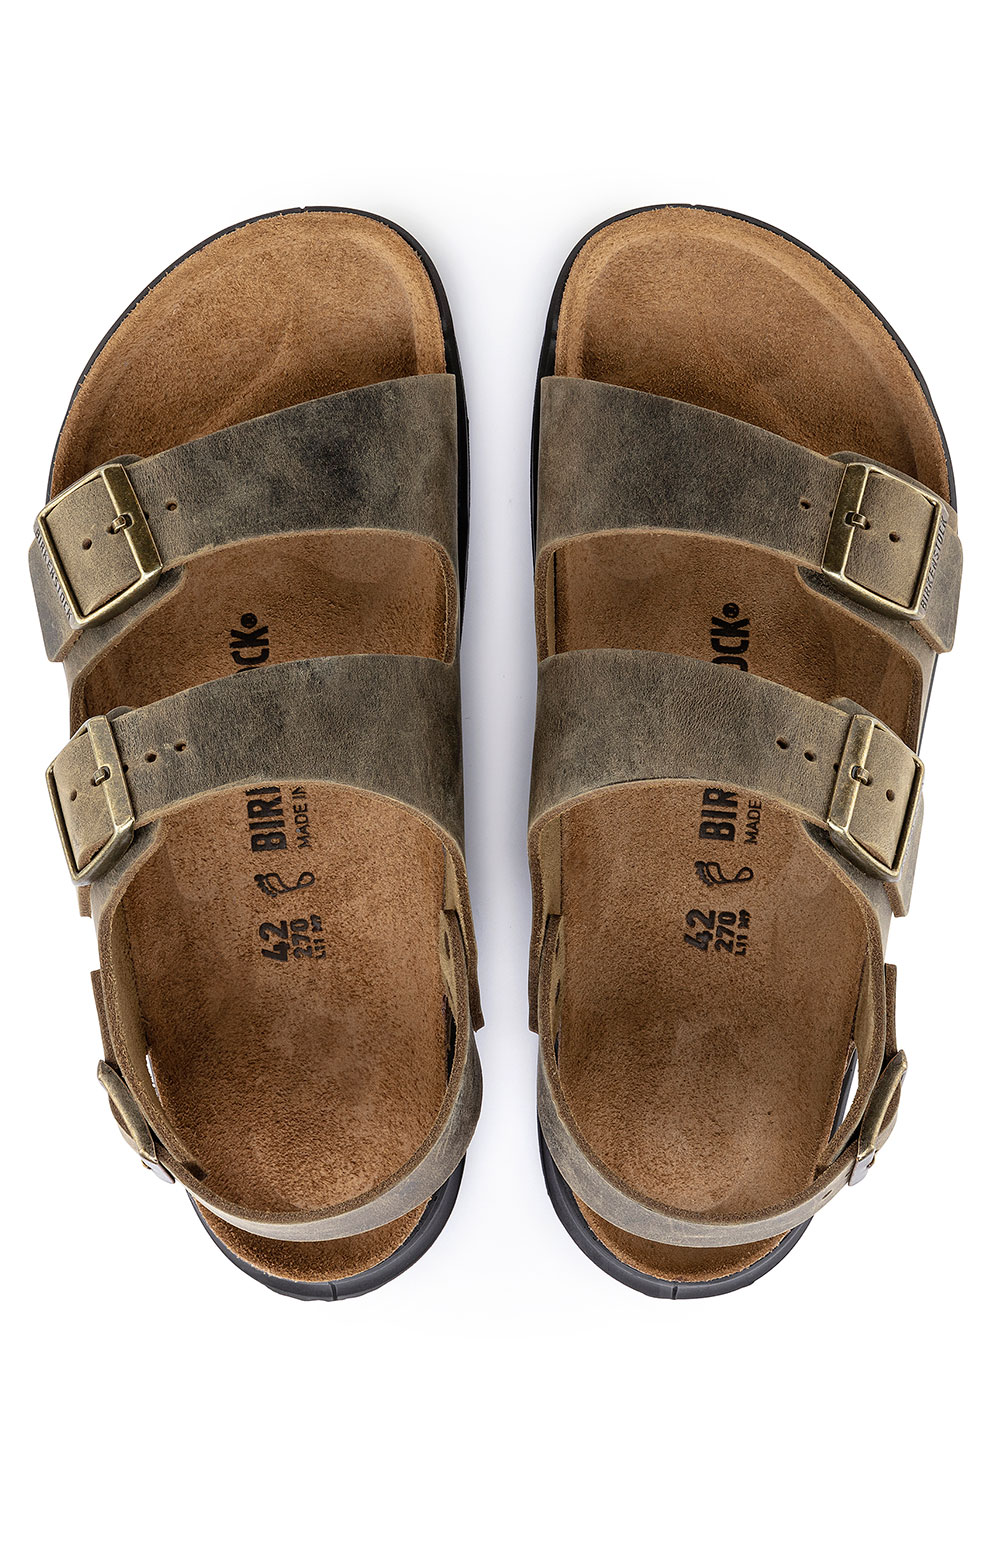 (1018427) Milano Cross Town Sandals - Faded Khaki 5